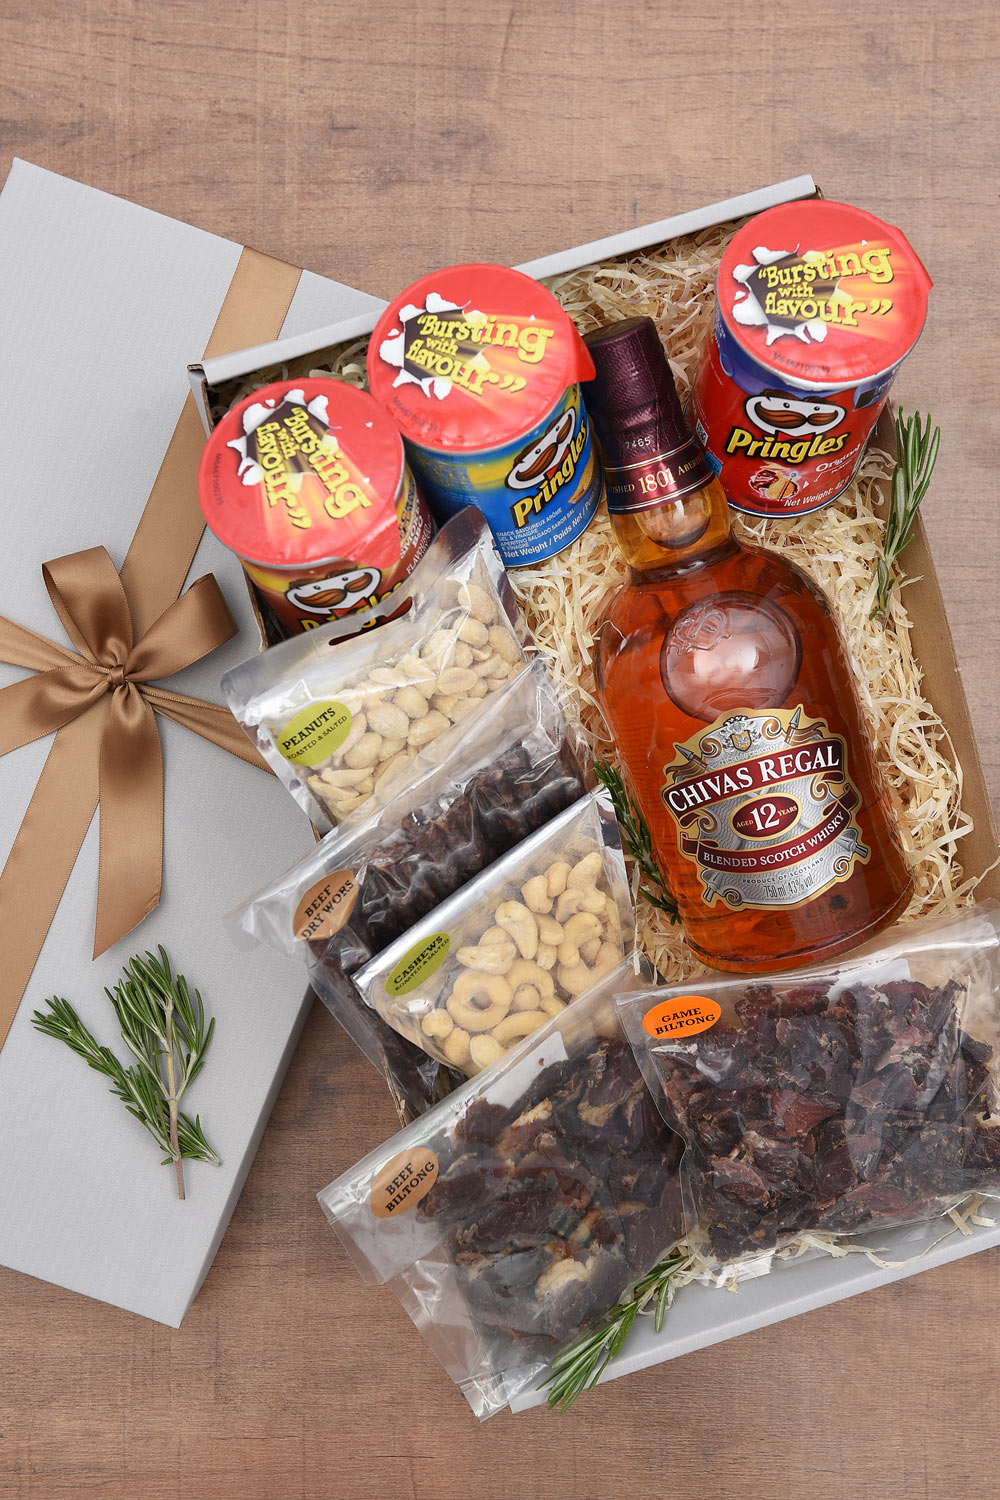 Chivas Regal 12 Year Old Whisky Gift With Salty Snacks | Hamper World